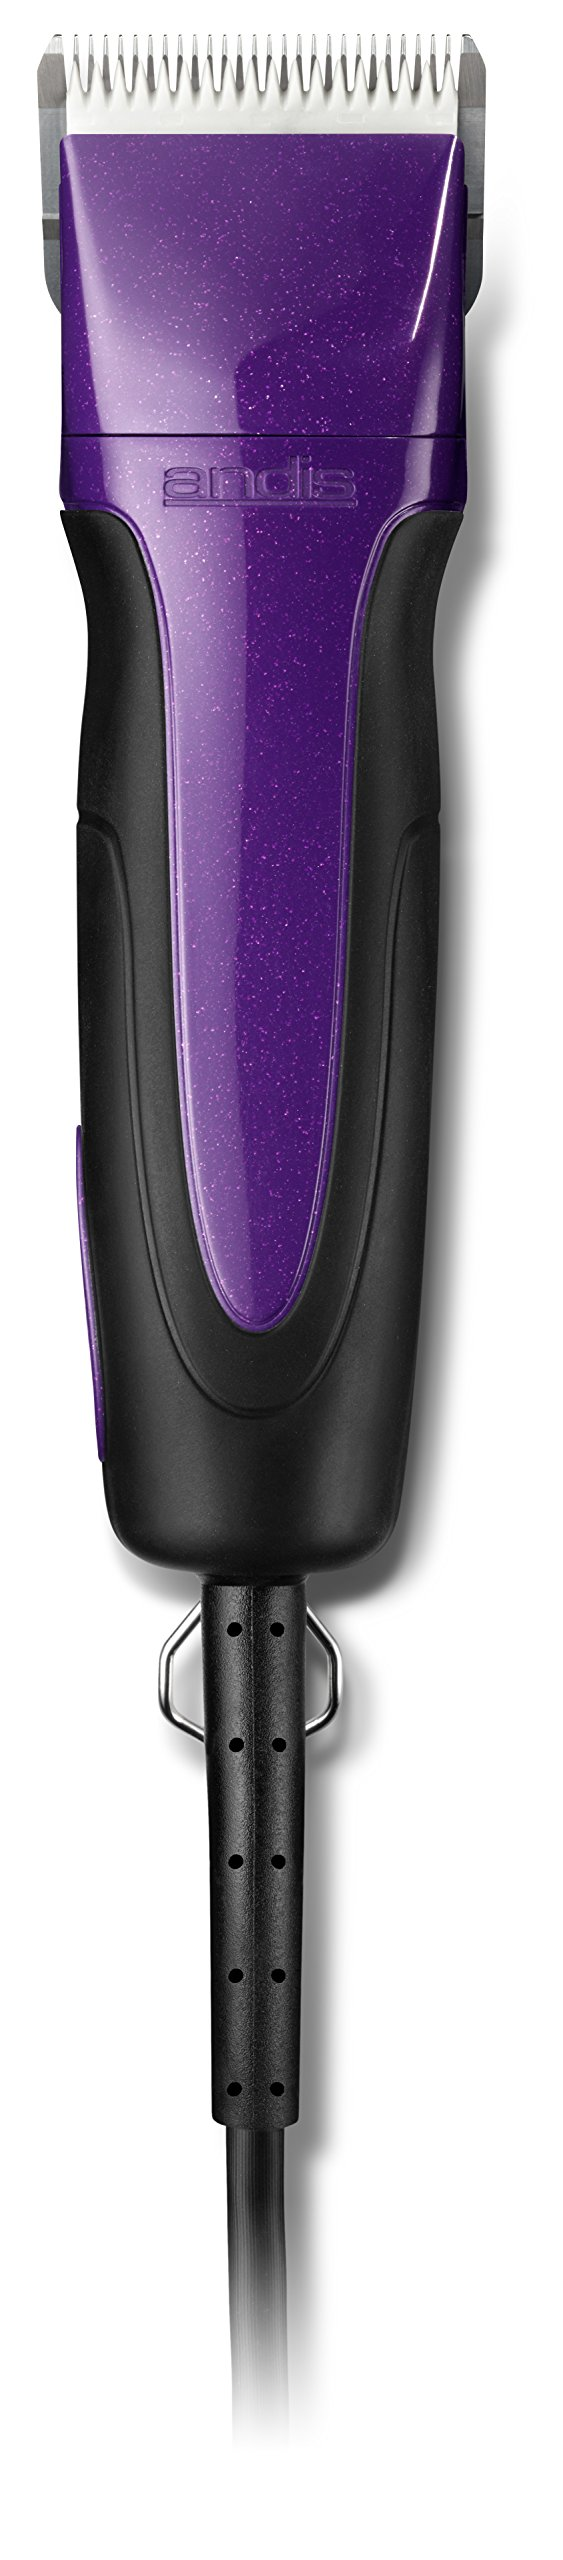 Andis Excel Pro-Animal 5-Speed Detachable Blade Clipper Kit - Professional  Animal/Dog Grooming, Plum Purple, SMC (65255)